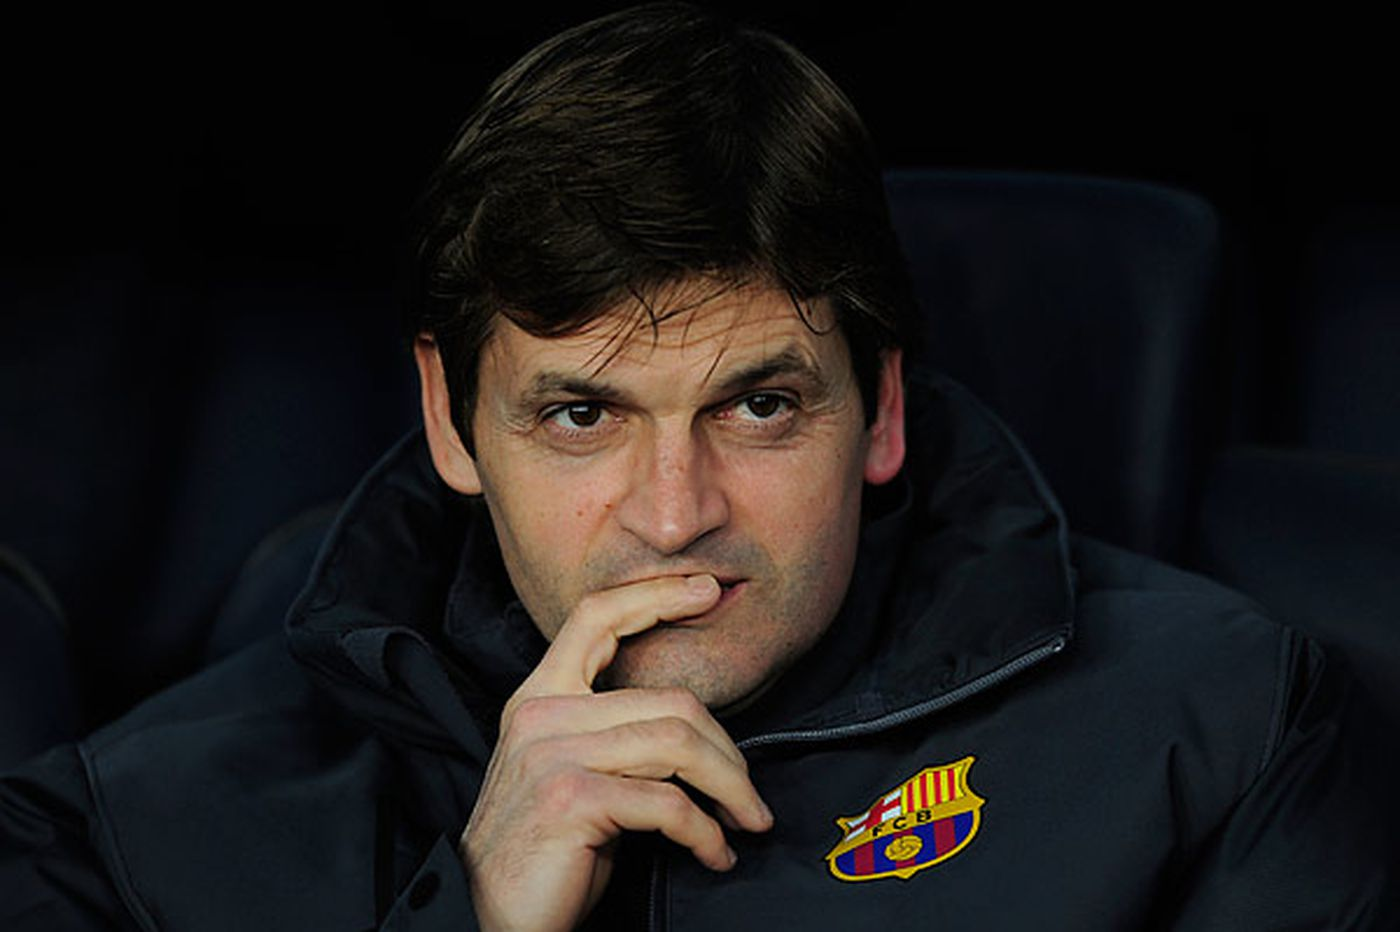 Barcelona says Tito Vilanova will have surgery to treat relapsed tumor